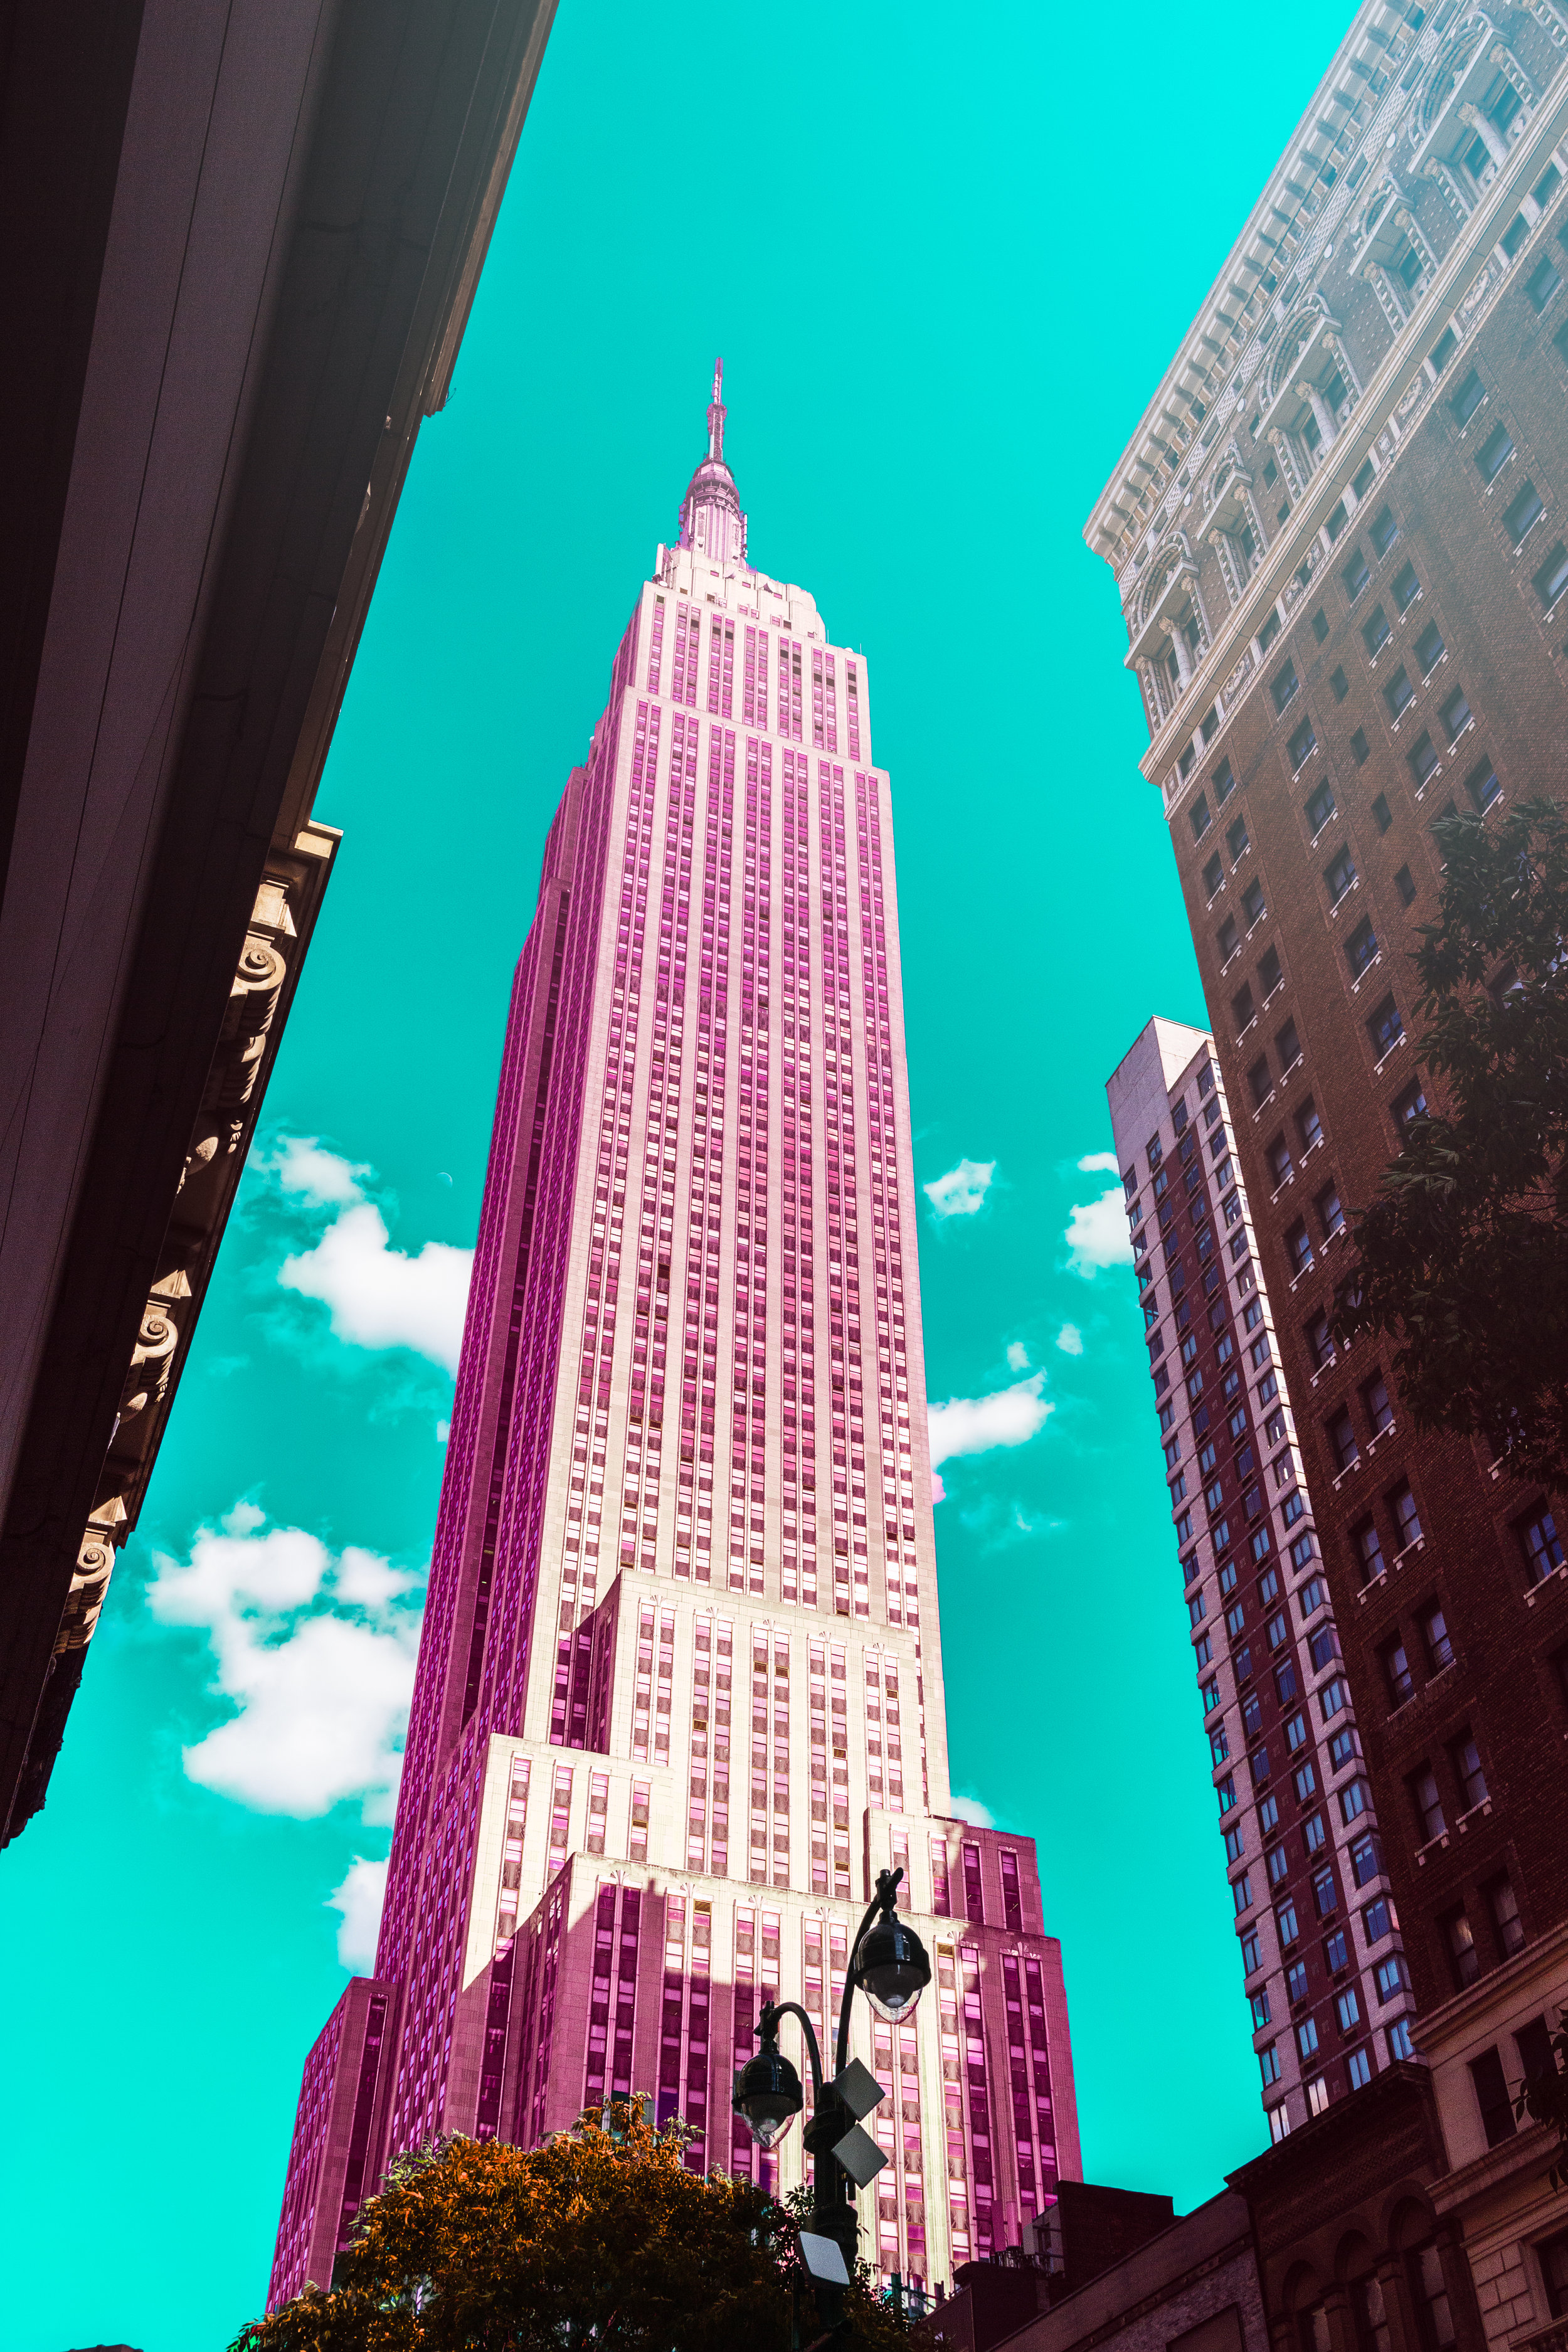 Empire State - Surreal Architecture by Mike O Leary - Greengraf Photography.jpg